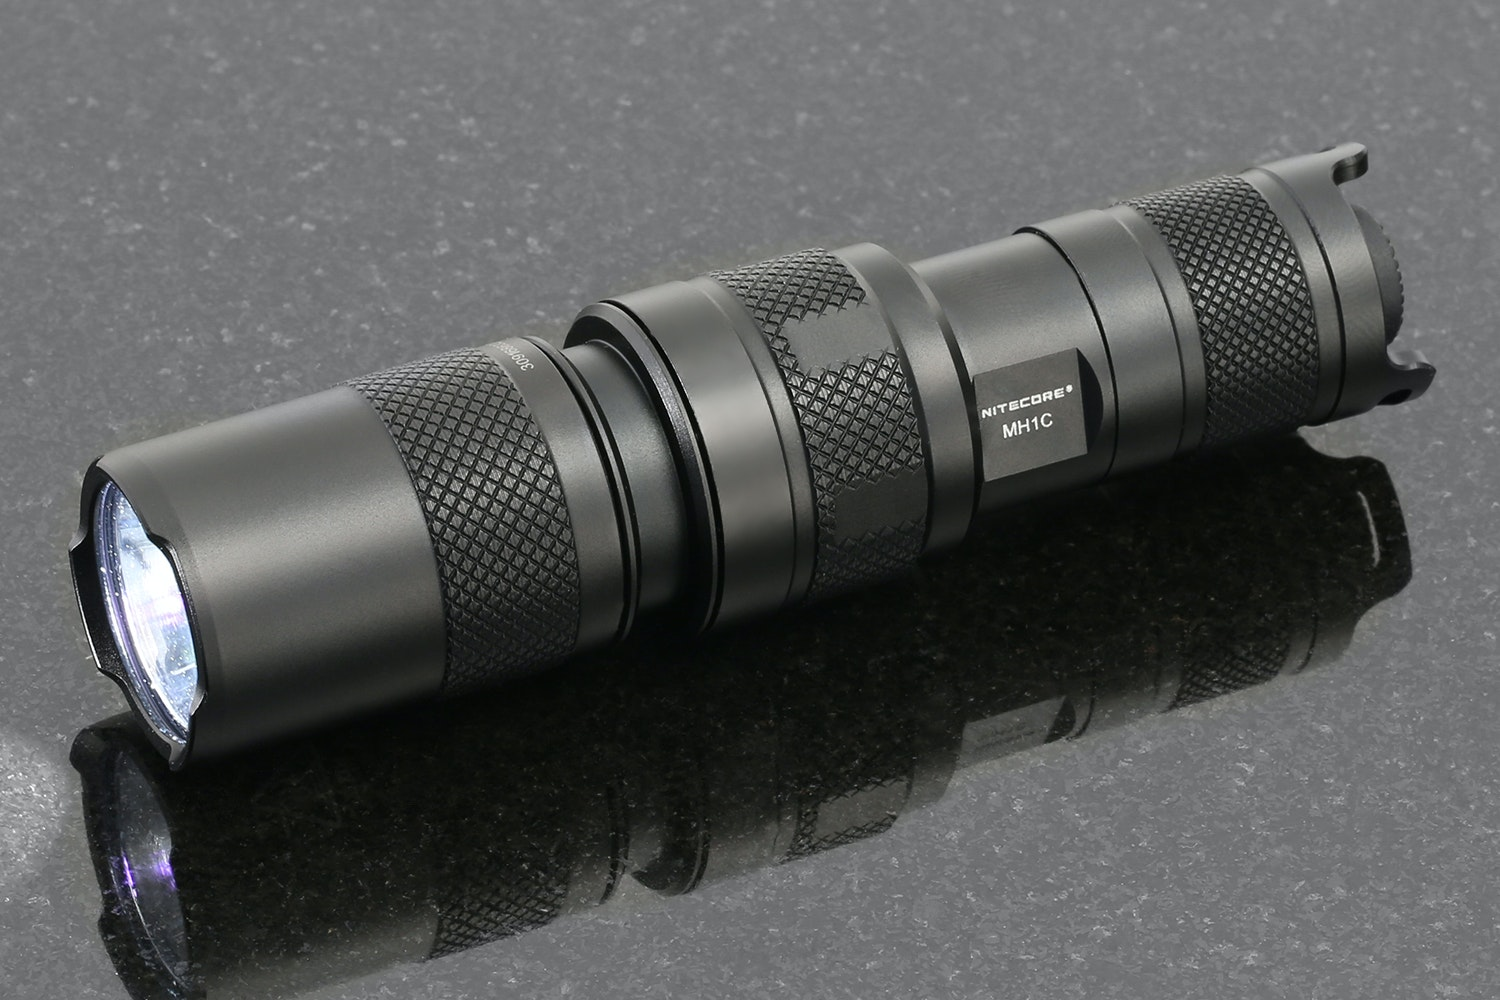 Nitecore MH1C Flashlight (RCR123)